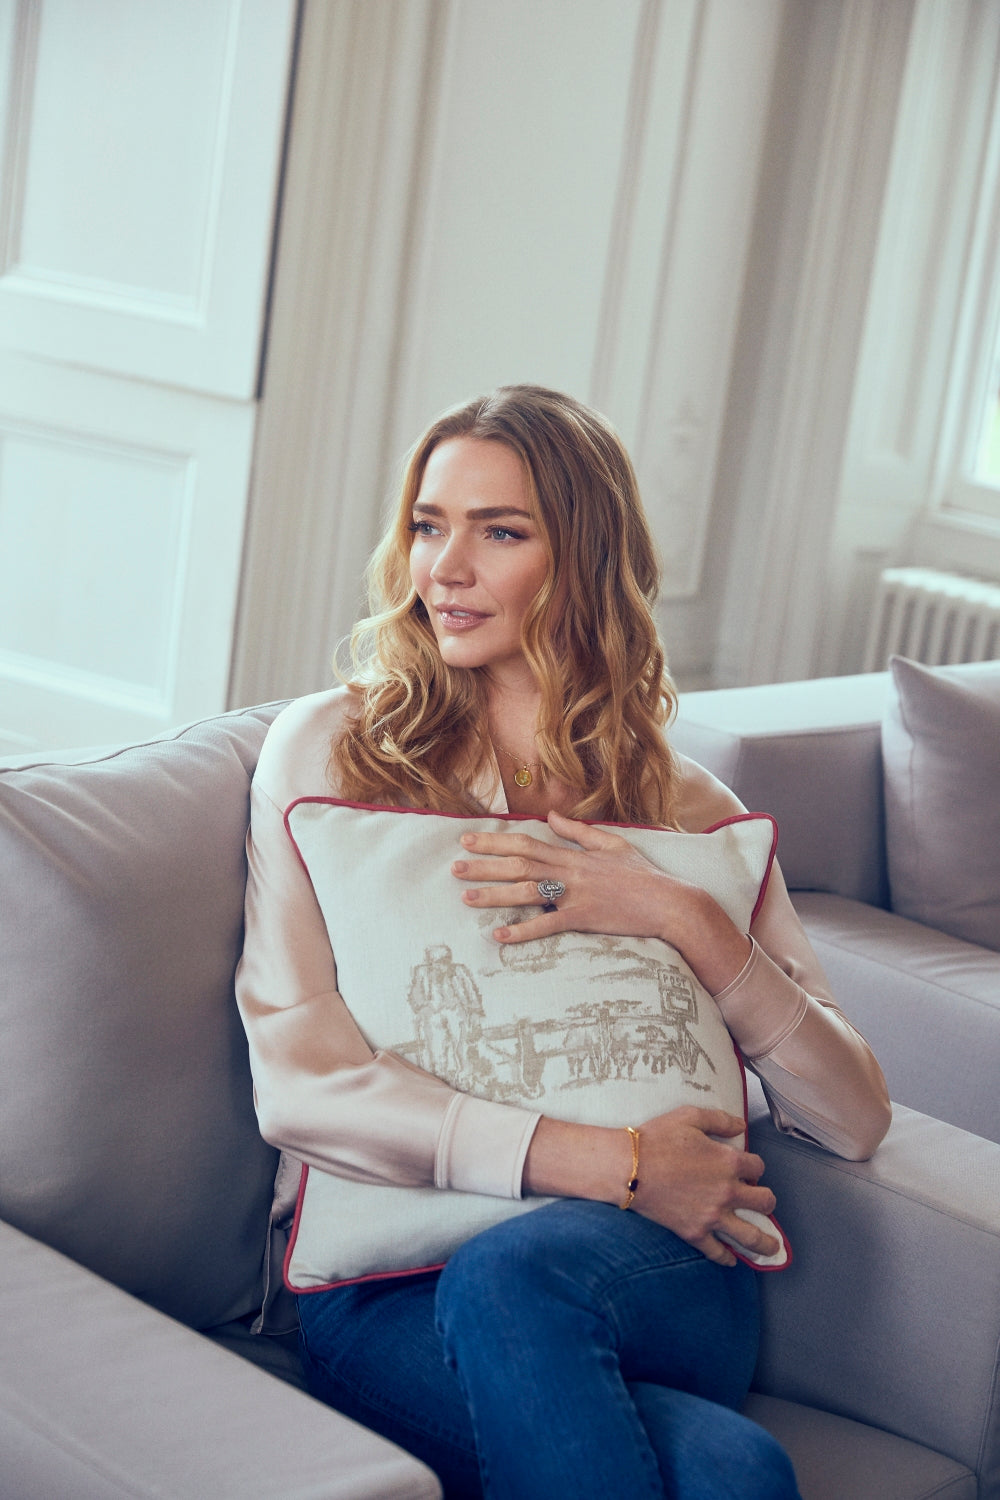 Inside Jodie's home - the model shares her countryside interior design tips